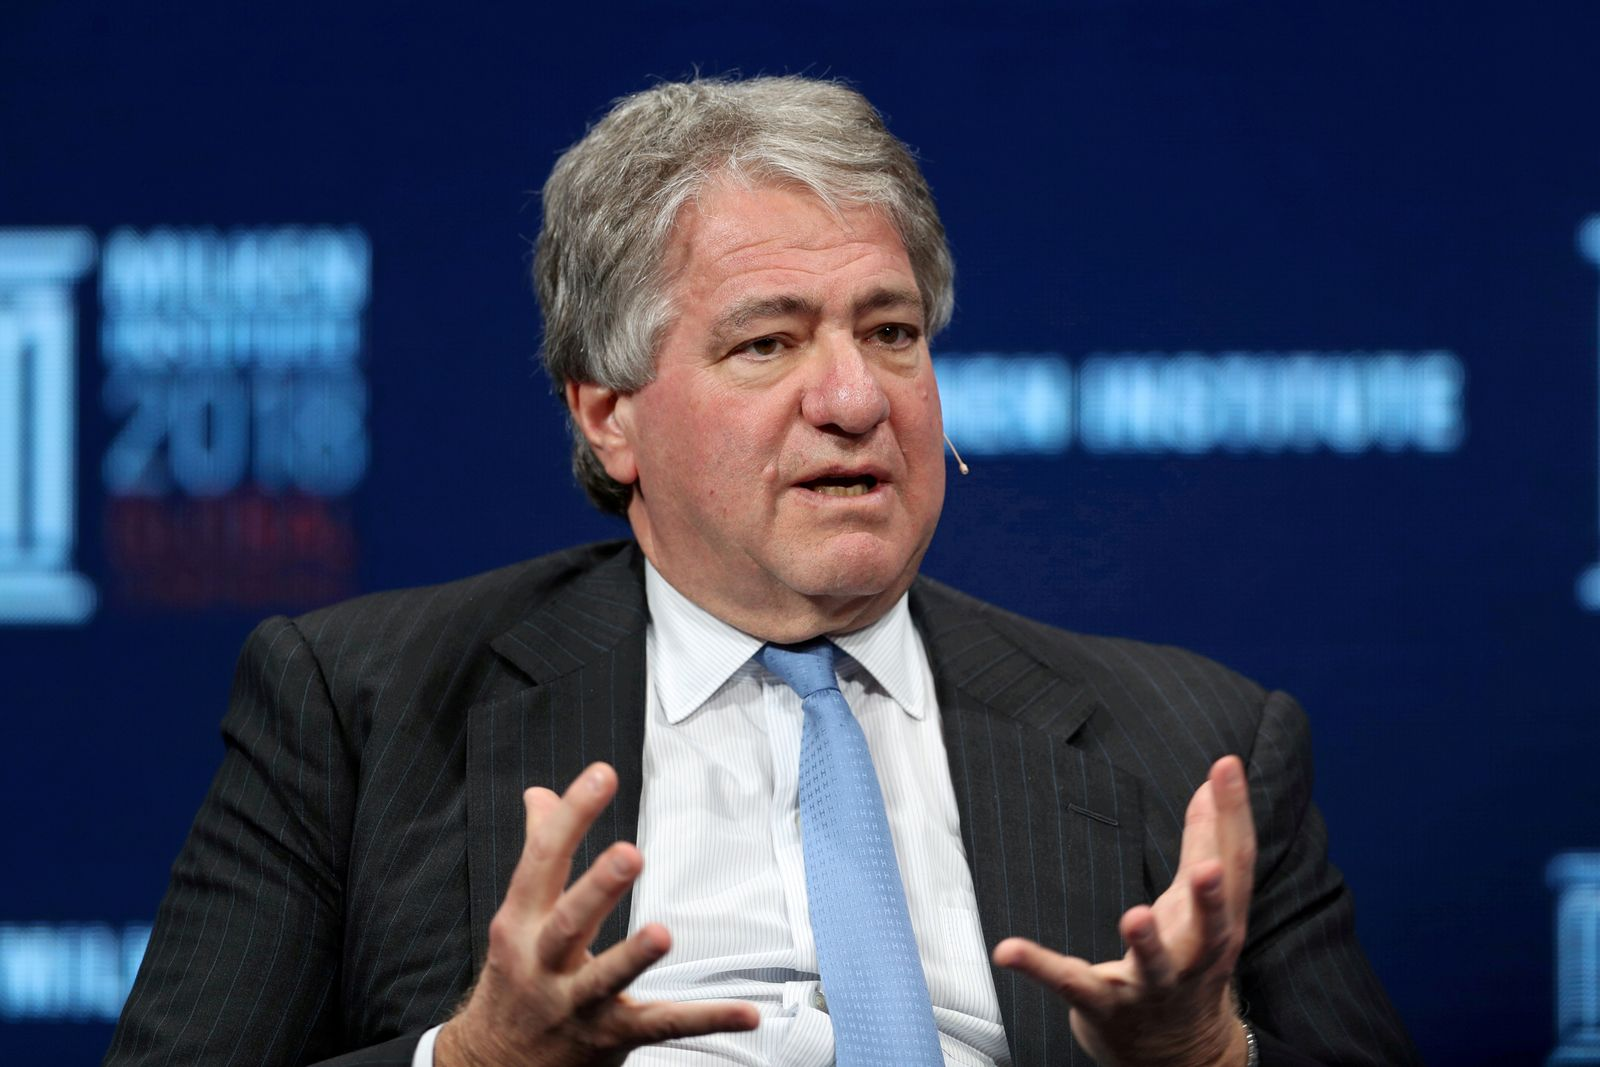 FILE PHOTO: Leon Black has resigned as CEO of Apollo Global Management, LLC, speaks at the Milken Institute's 21st Global Conference in Beverly Hills